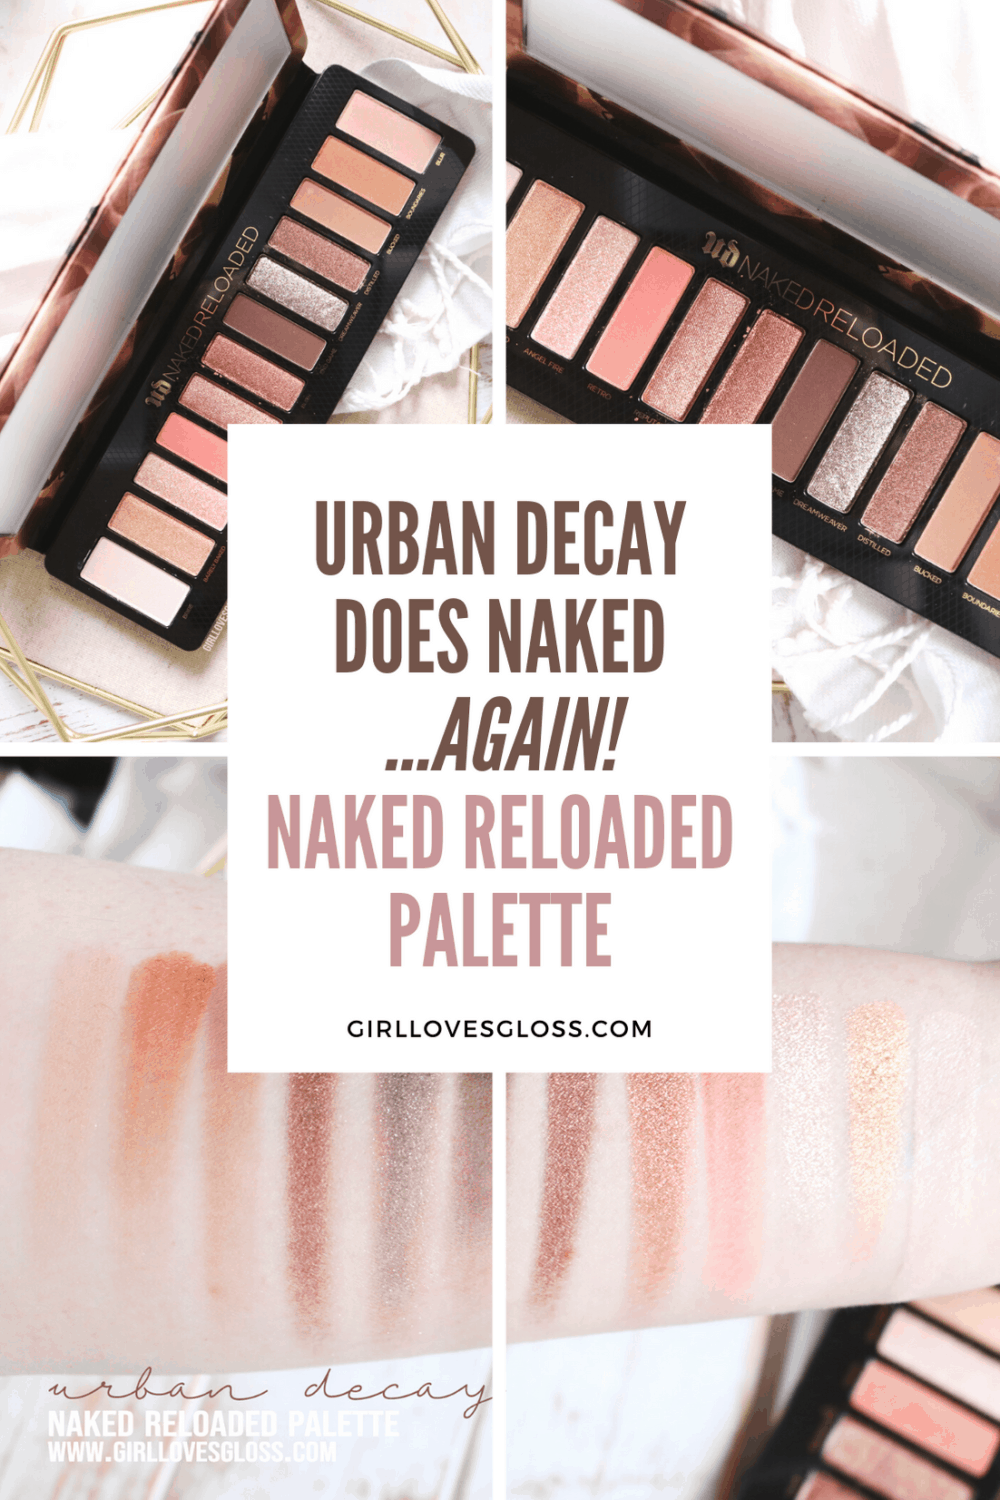 Urban Decay Naked Reloaded Palette Review and Swatches